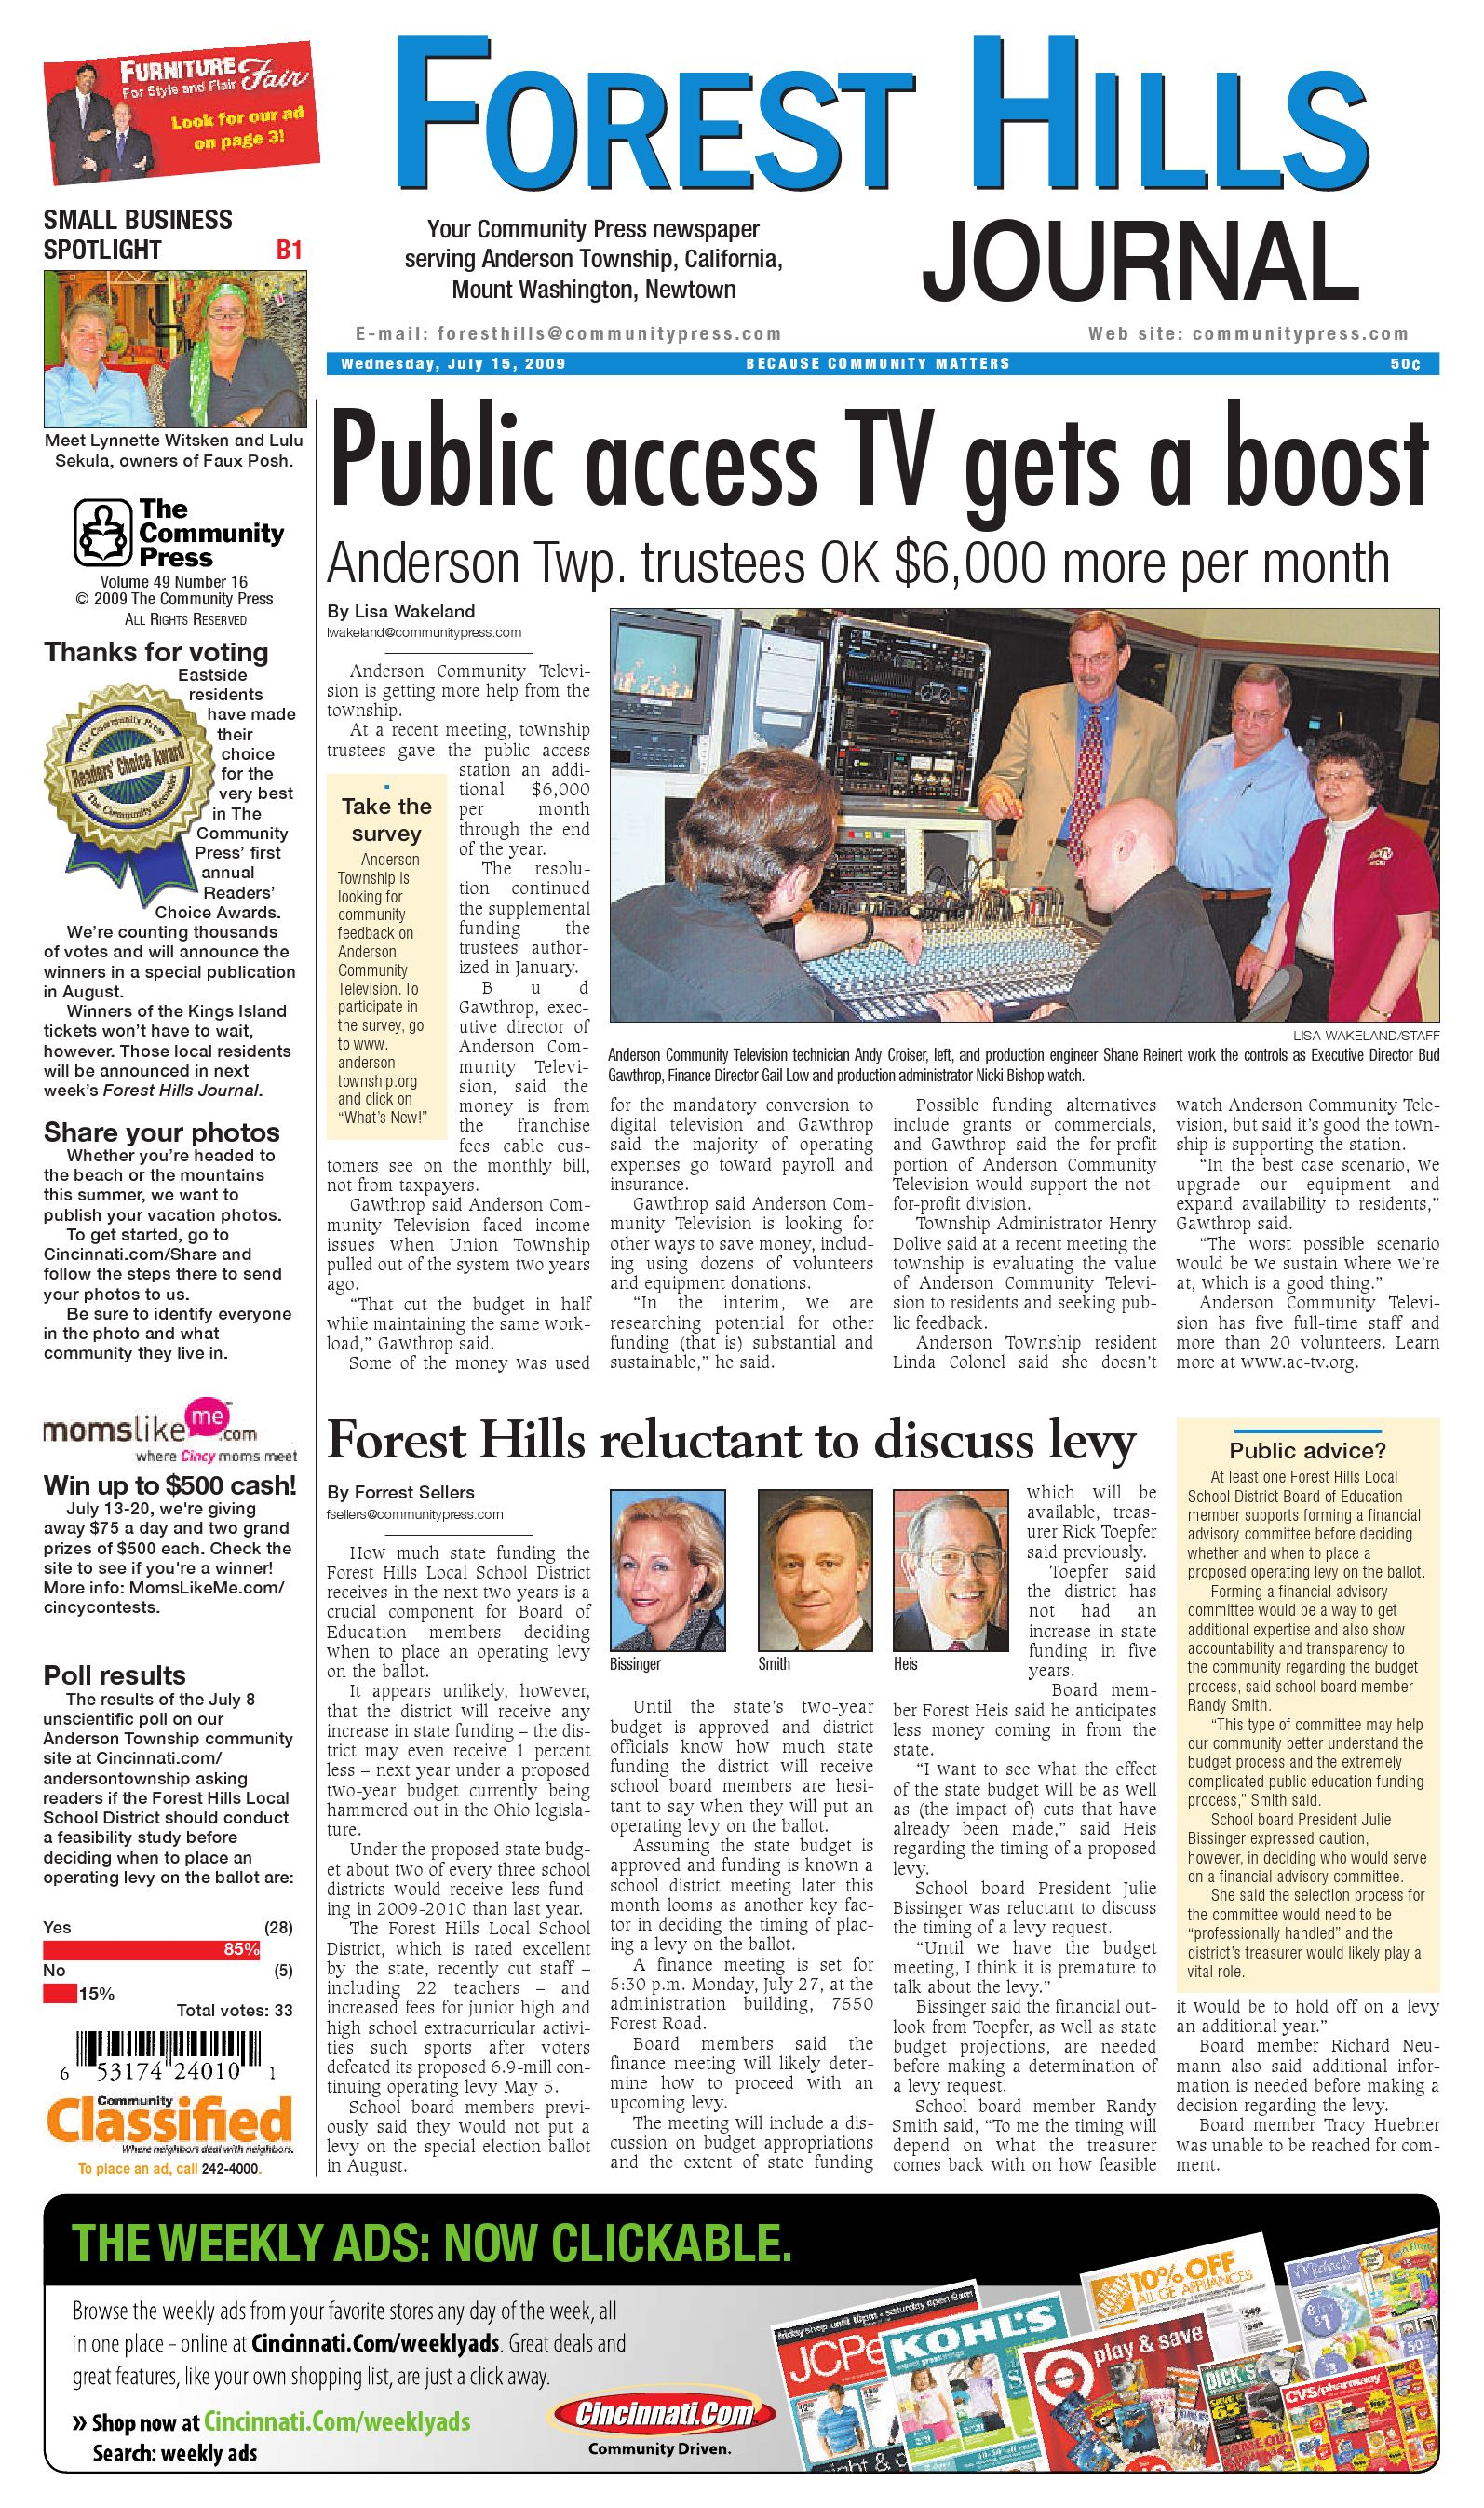 forest-hills-journal-071509a by Enquirer Media - issuu 4cd6813f2c